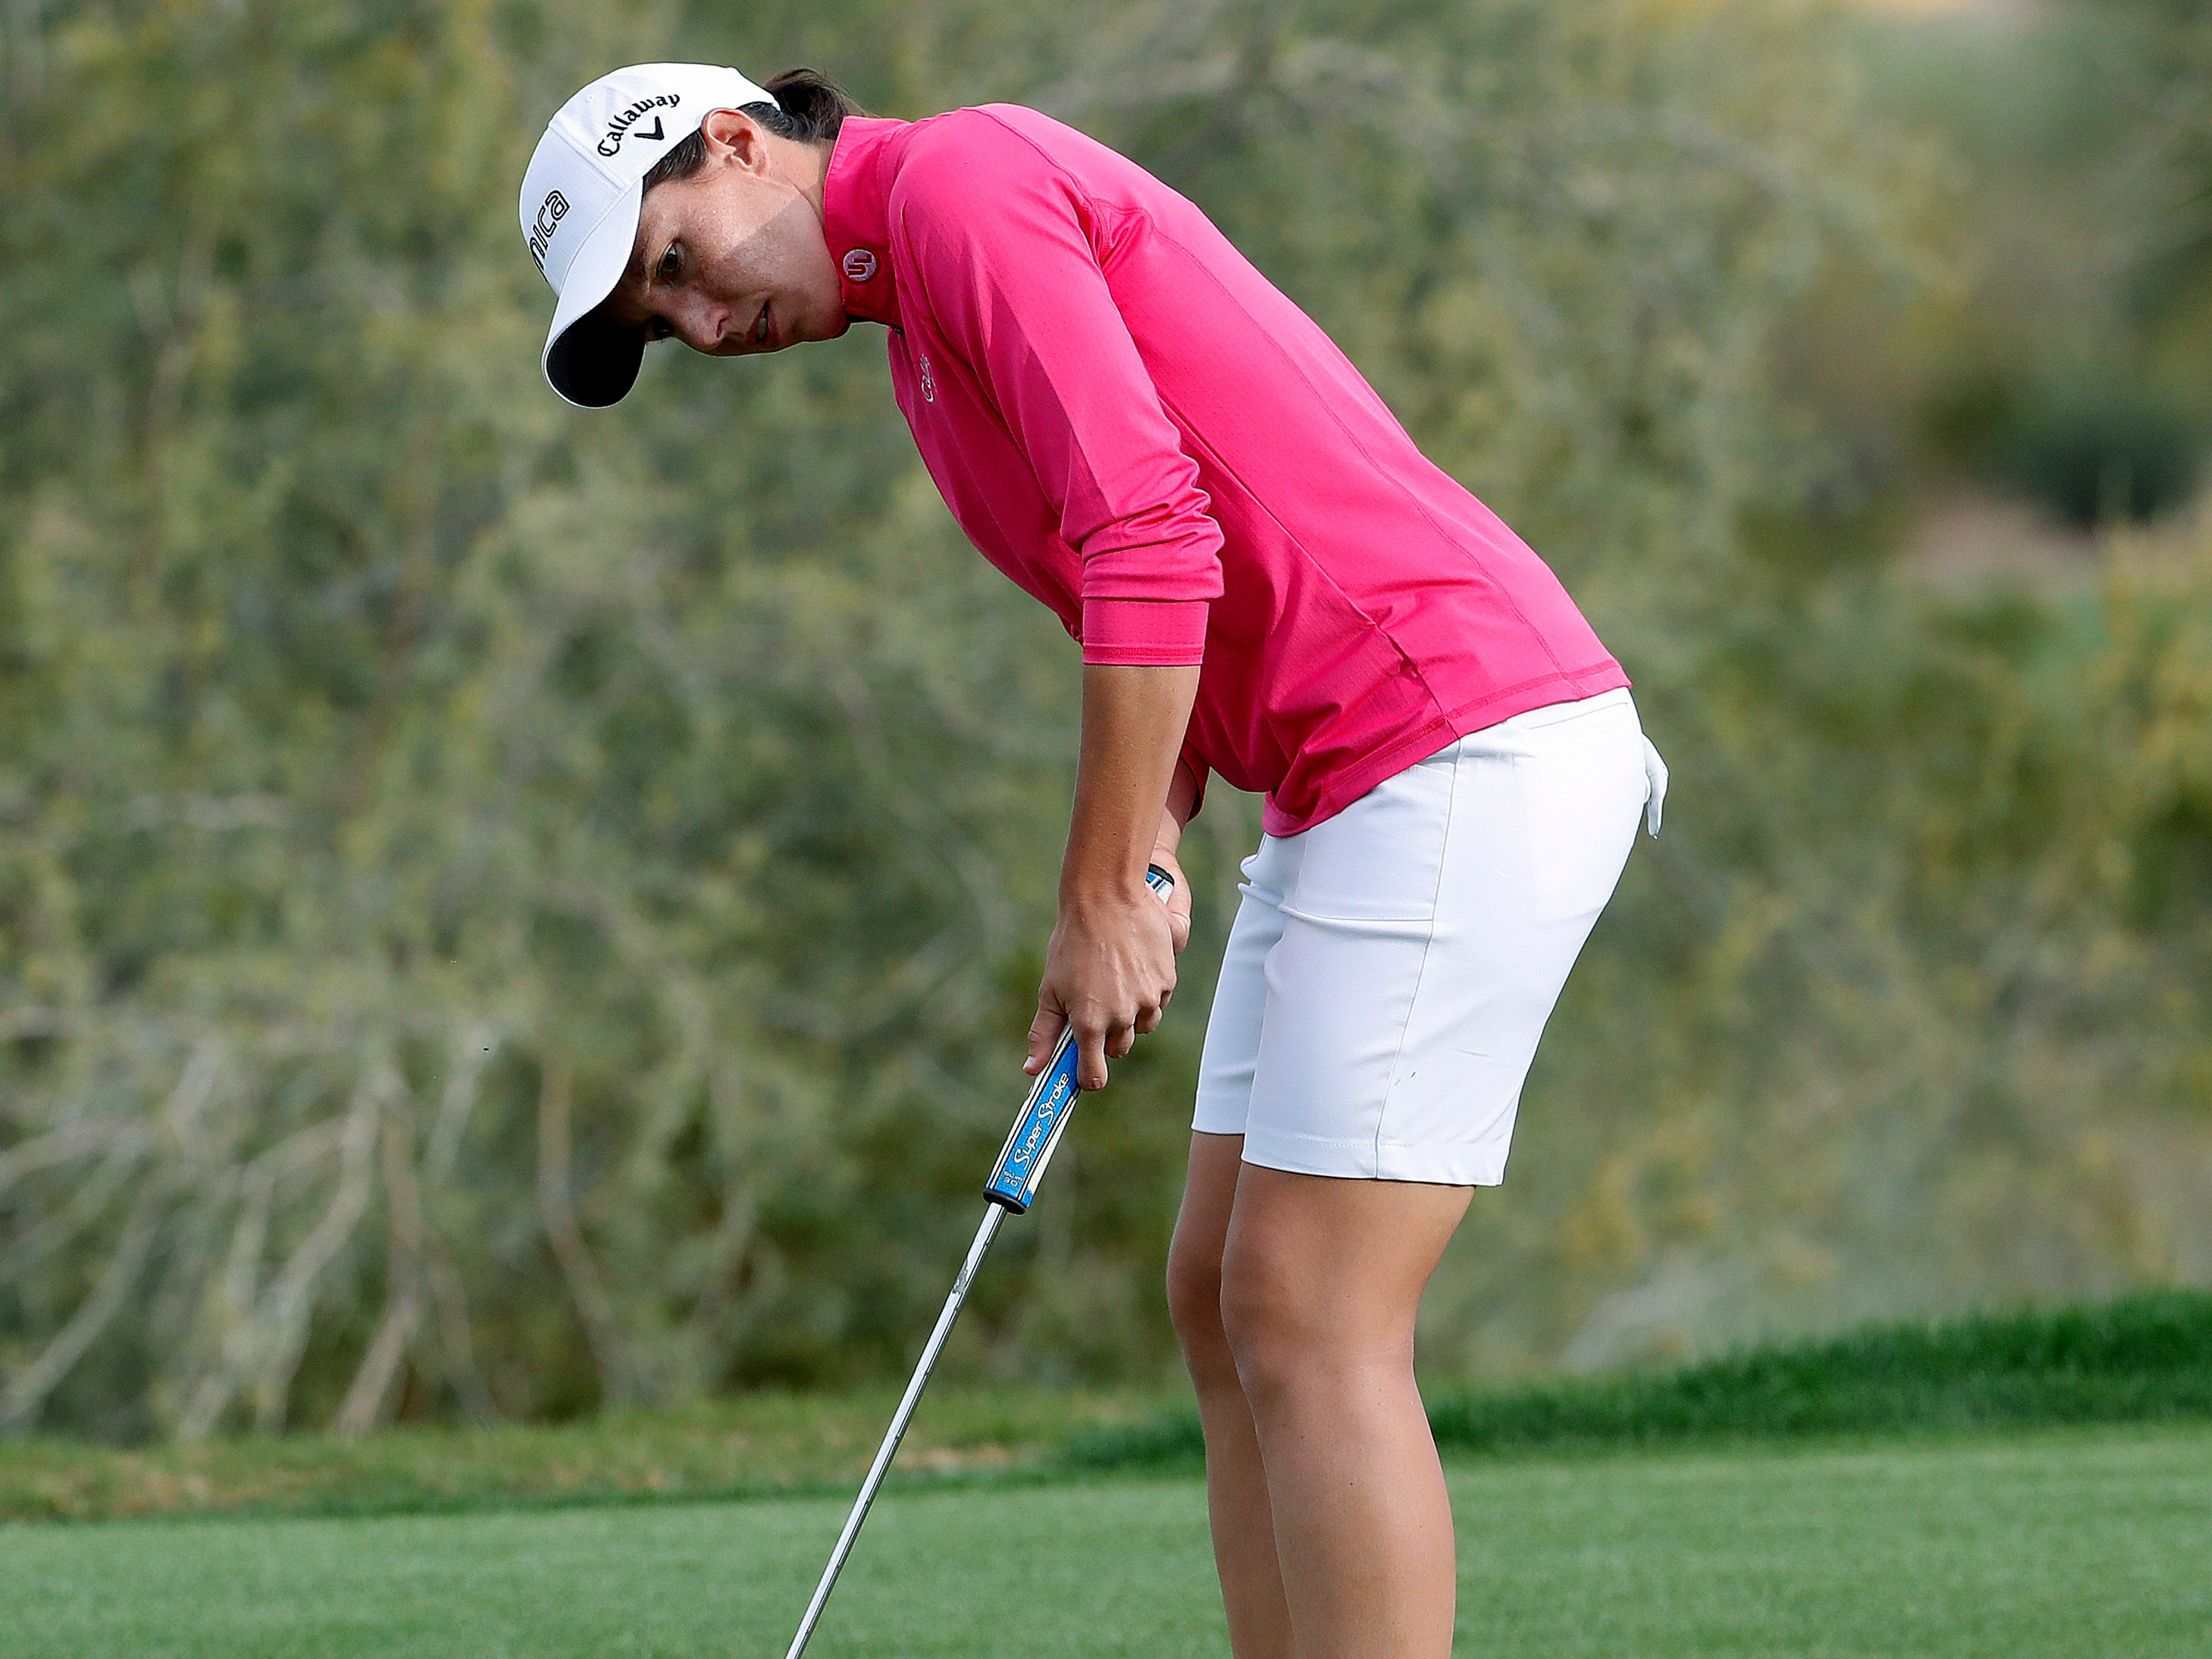 Carlota Ciganda putts for birdie on the 18th green during the third round of the Founders Cup LPGA golf tournament Saturday, March 23, 2019, in Phoenix.